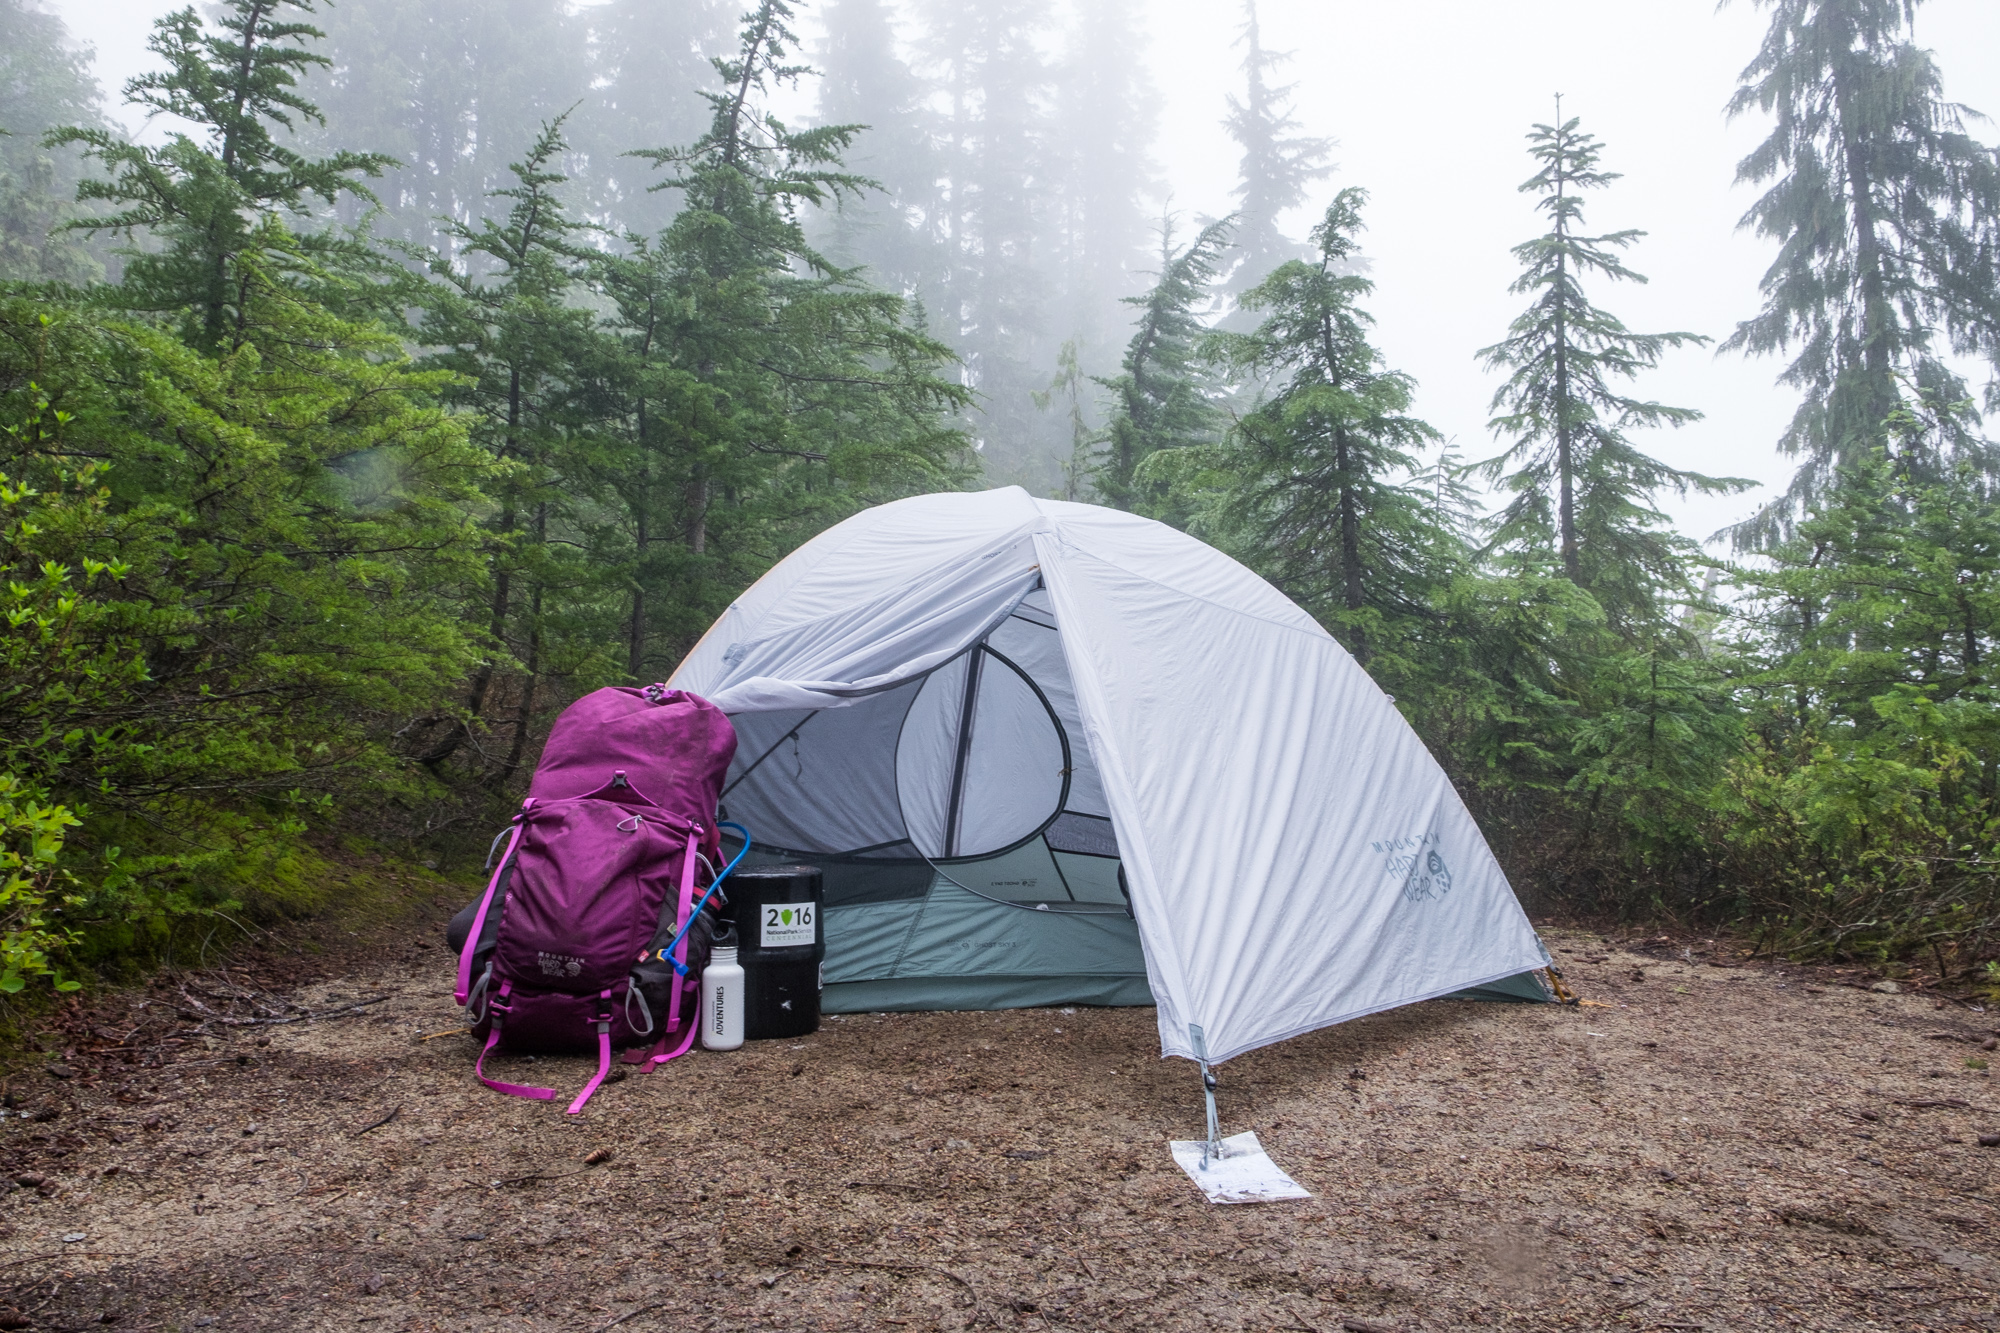 When we made camp the fog rolled in. Good thing we were tired and ready for some food and sleep.